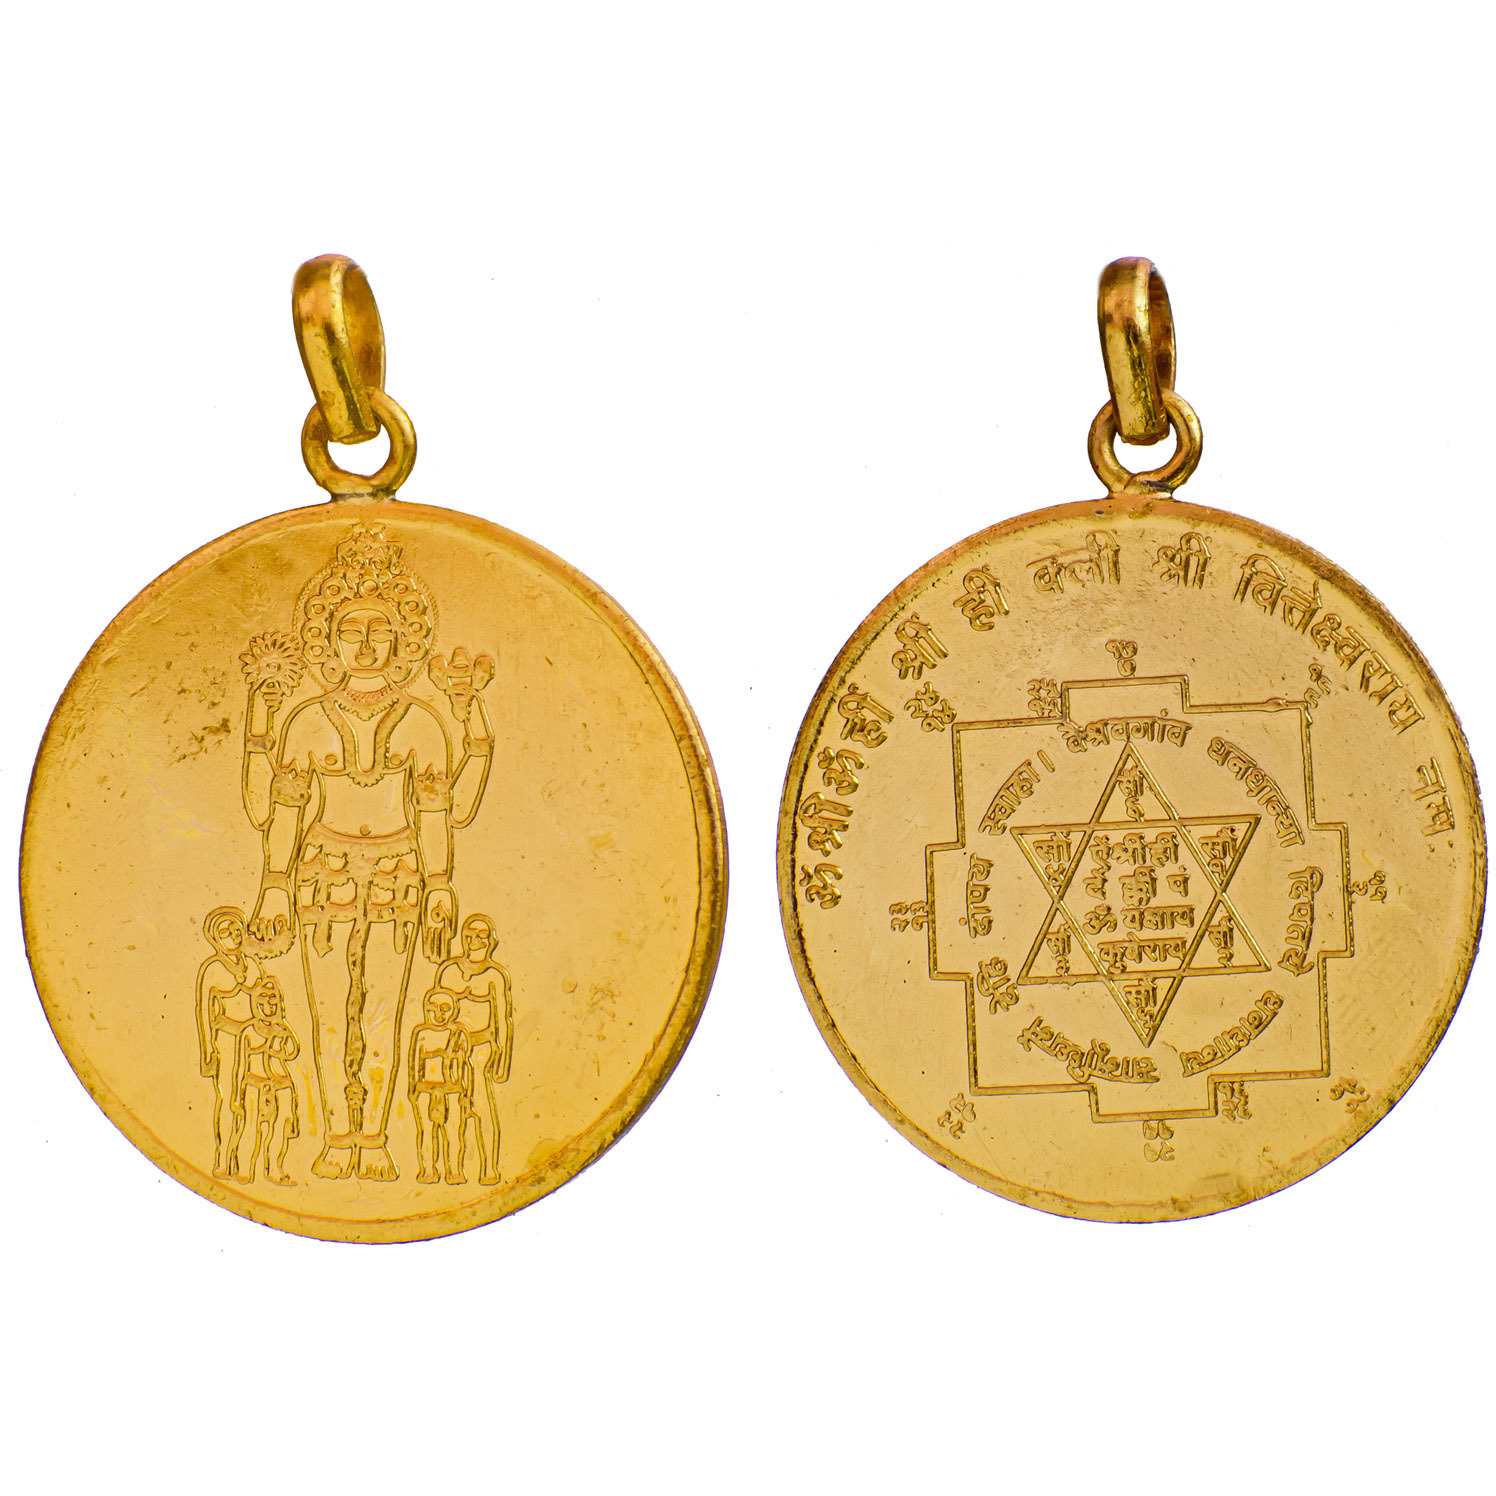 Pendant of Vastu Purusha with His Yantra on Reverse (Two Sided Pendant): Removal of Vastu Defects